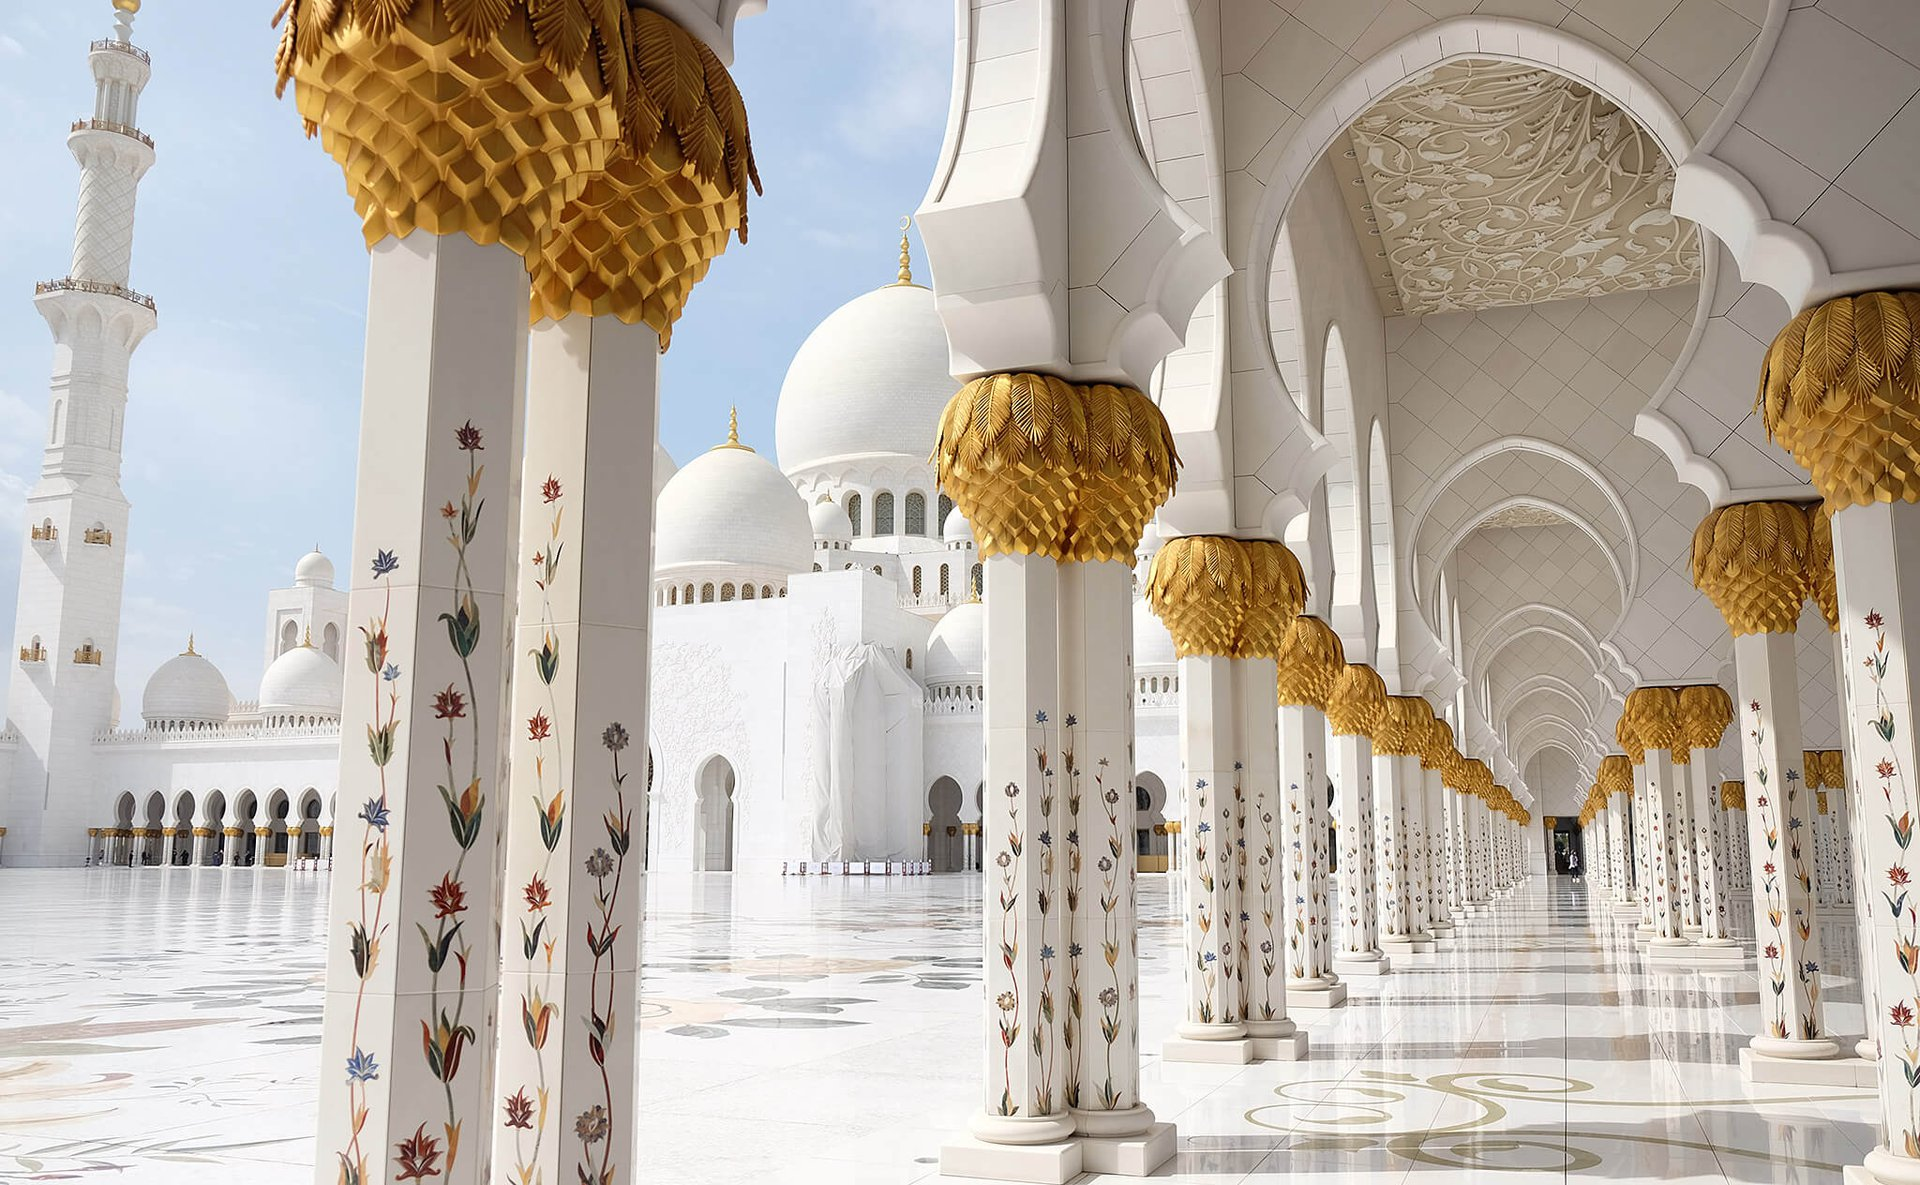 Sheikh_Zayed_Grand_Mosque.jpg